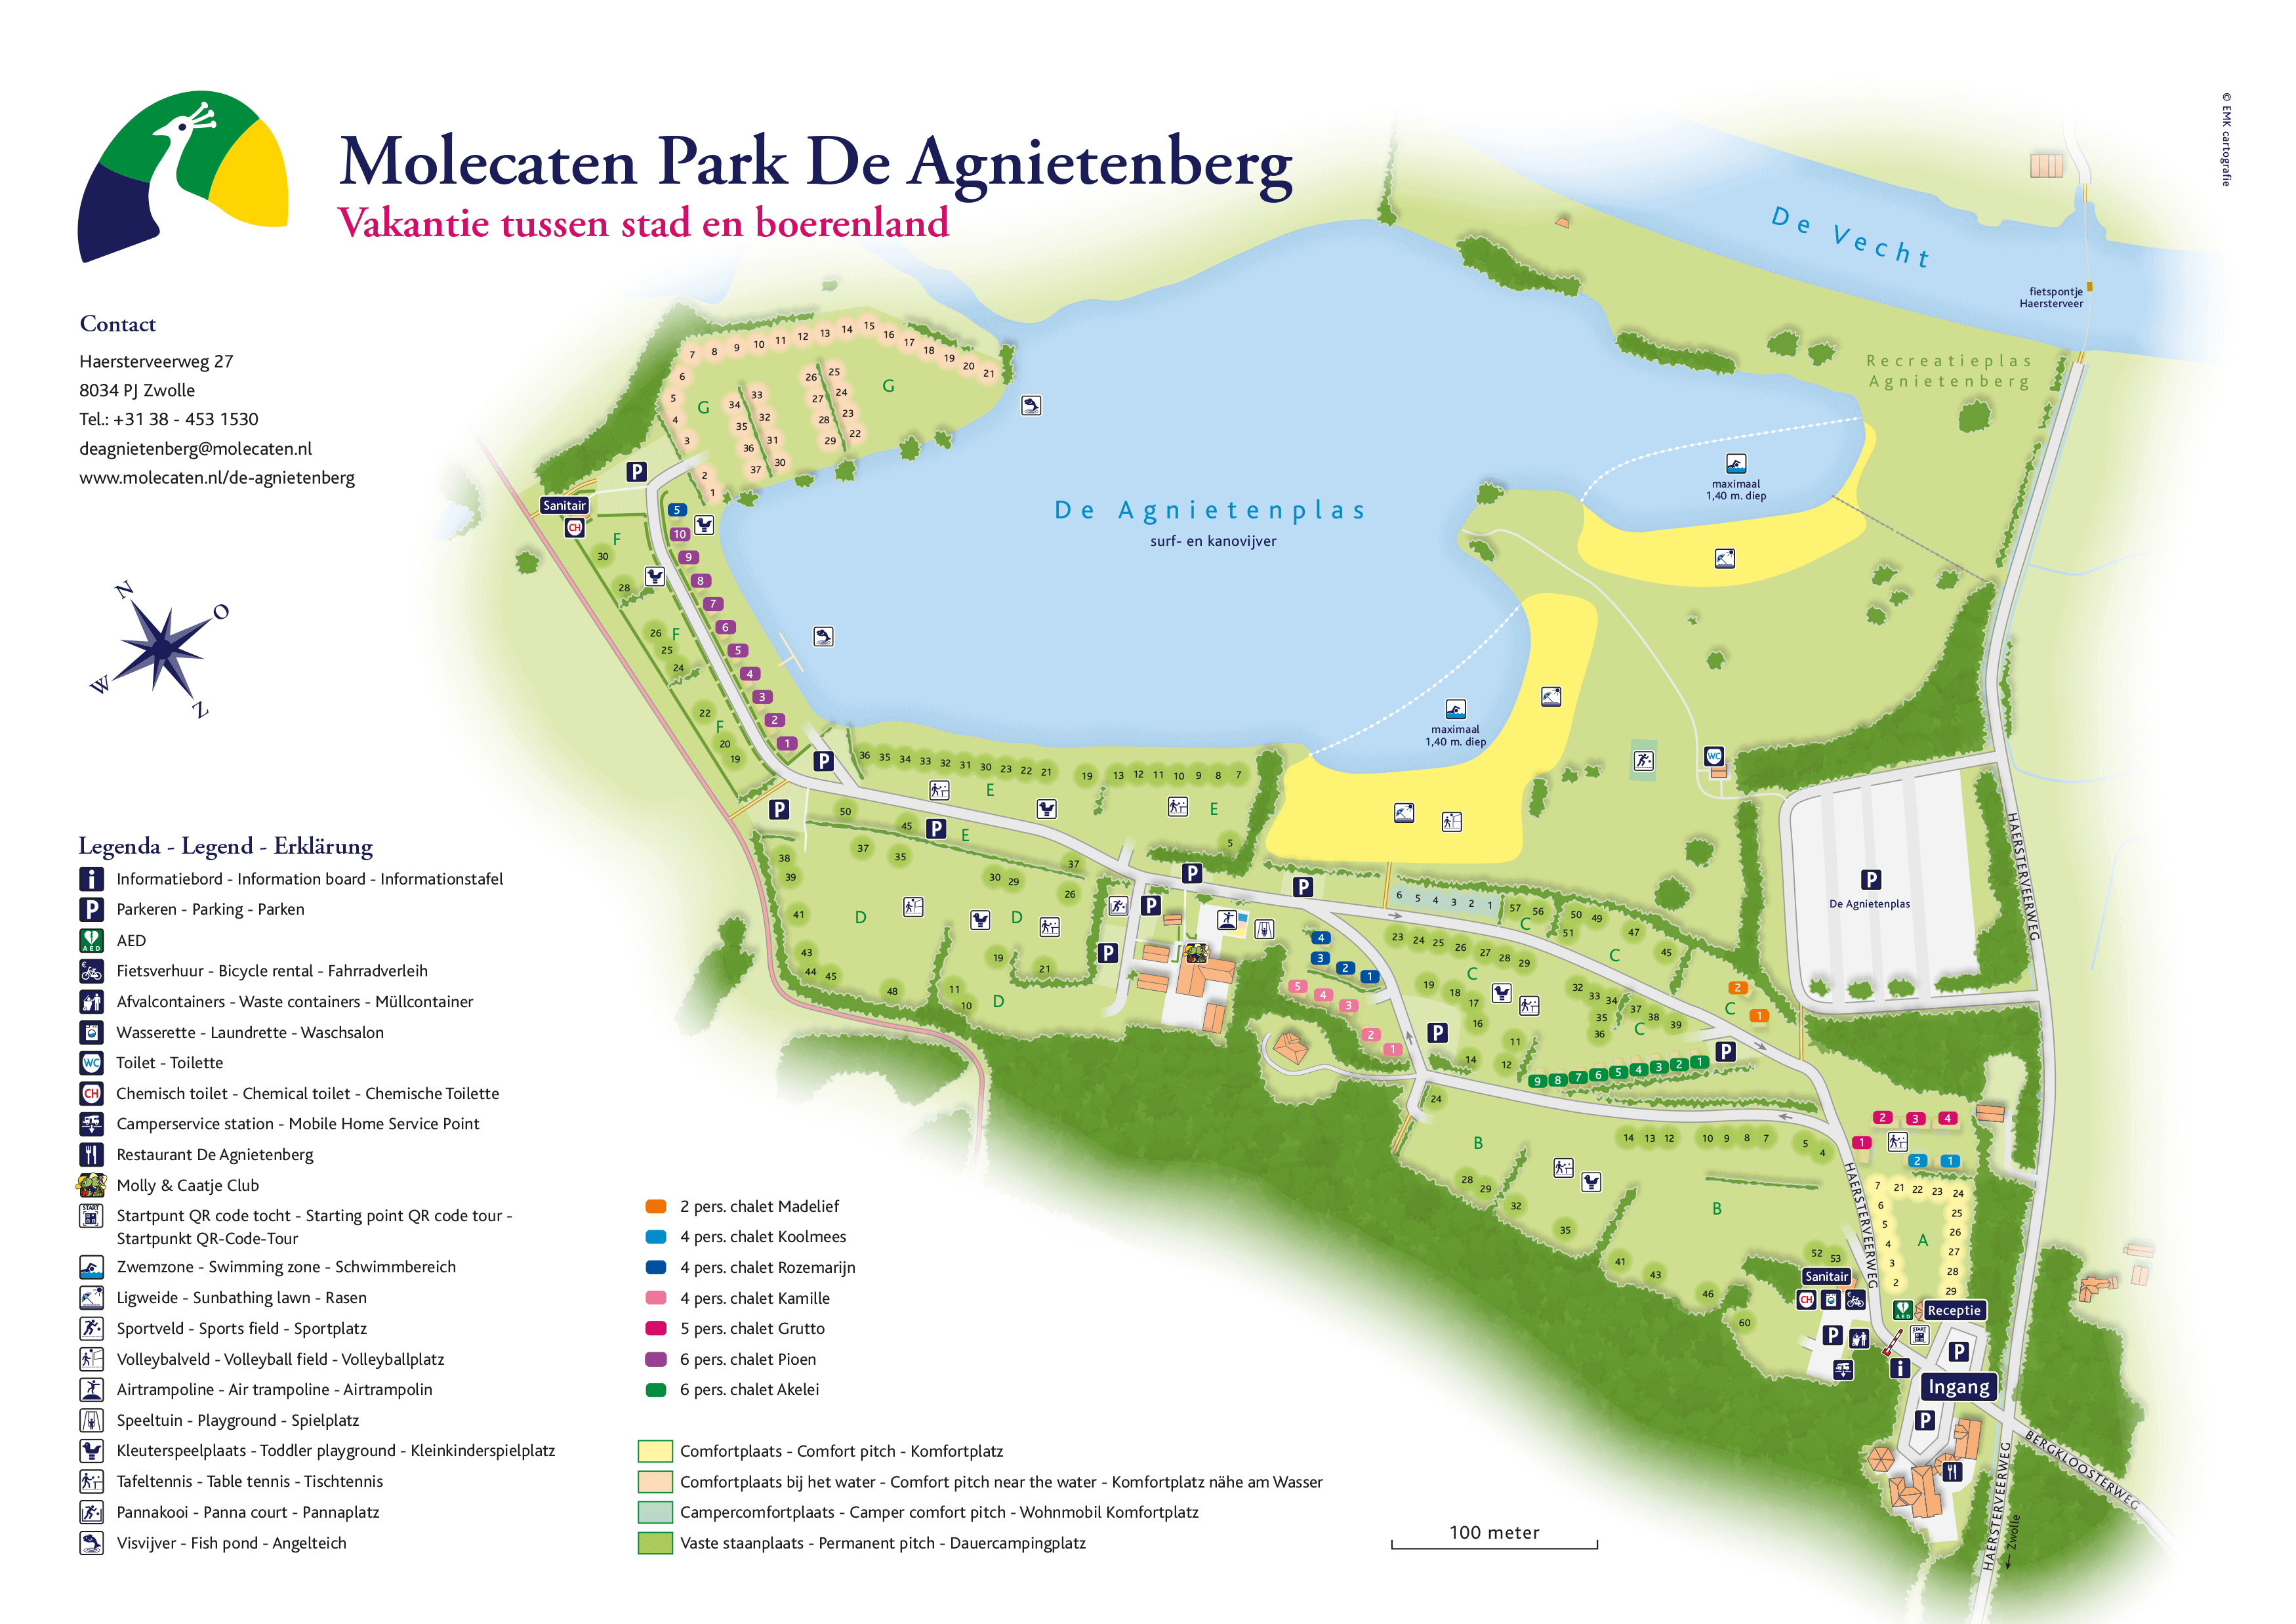 Molecaten Park De Agnietenberg accommodation.parkmap.alttext